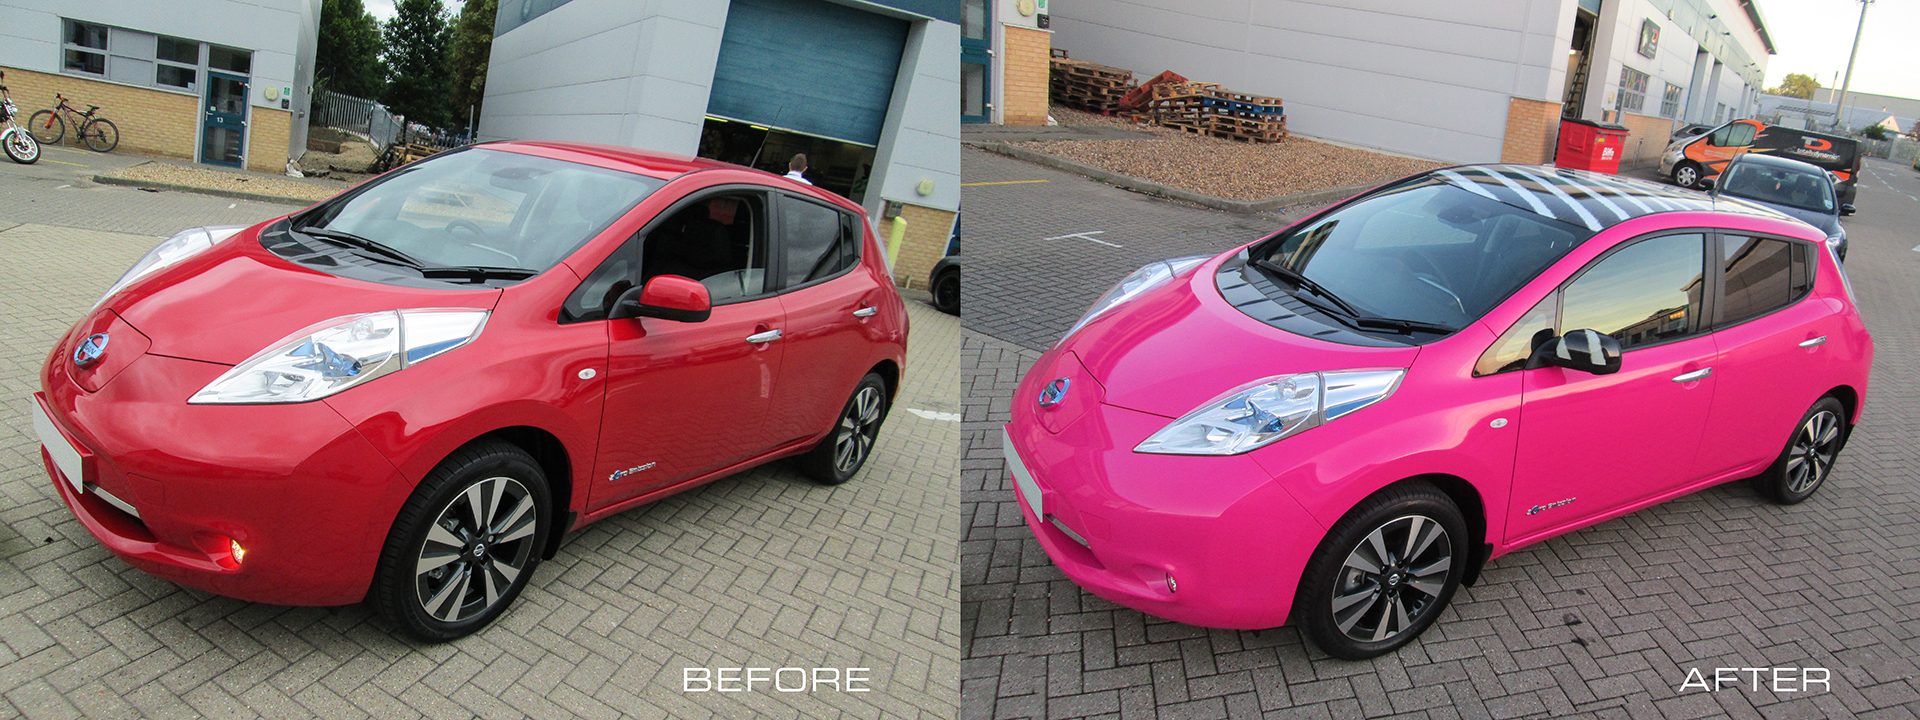 Nissan_Before__After.jpg